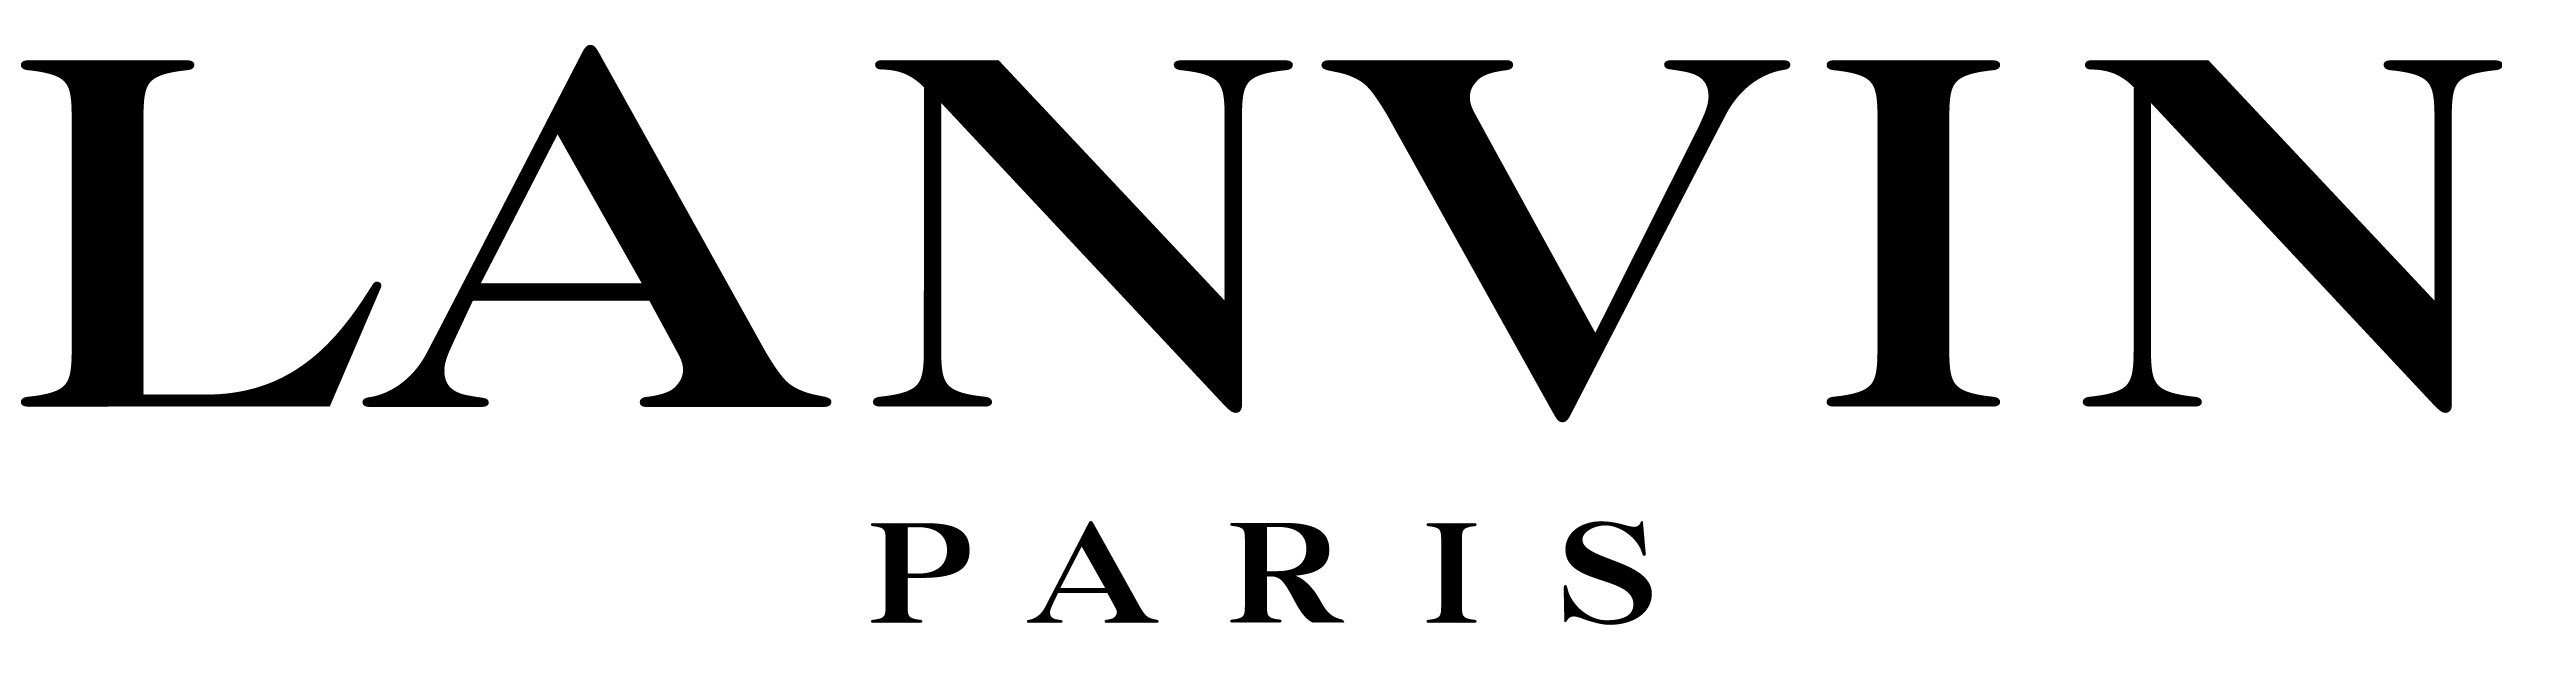 Lanvin Logos Download